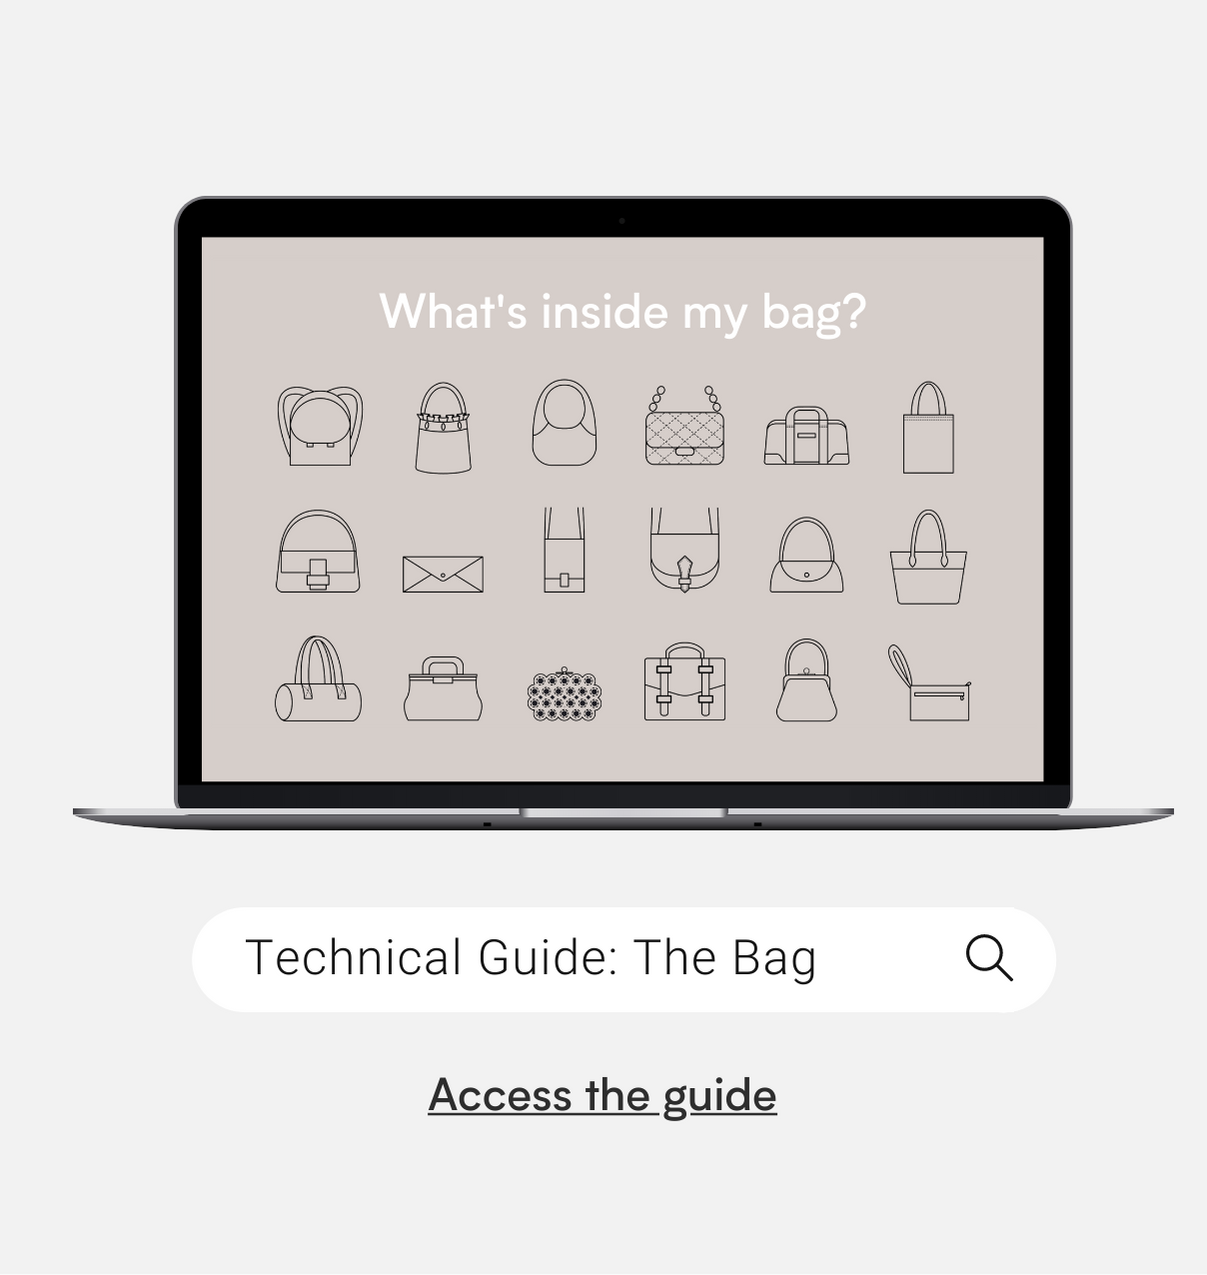 Knowledge Base: The Bag